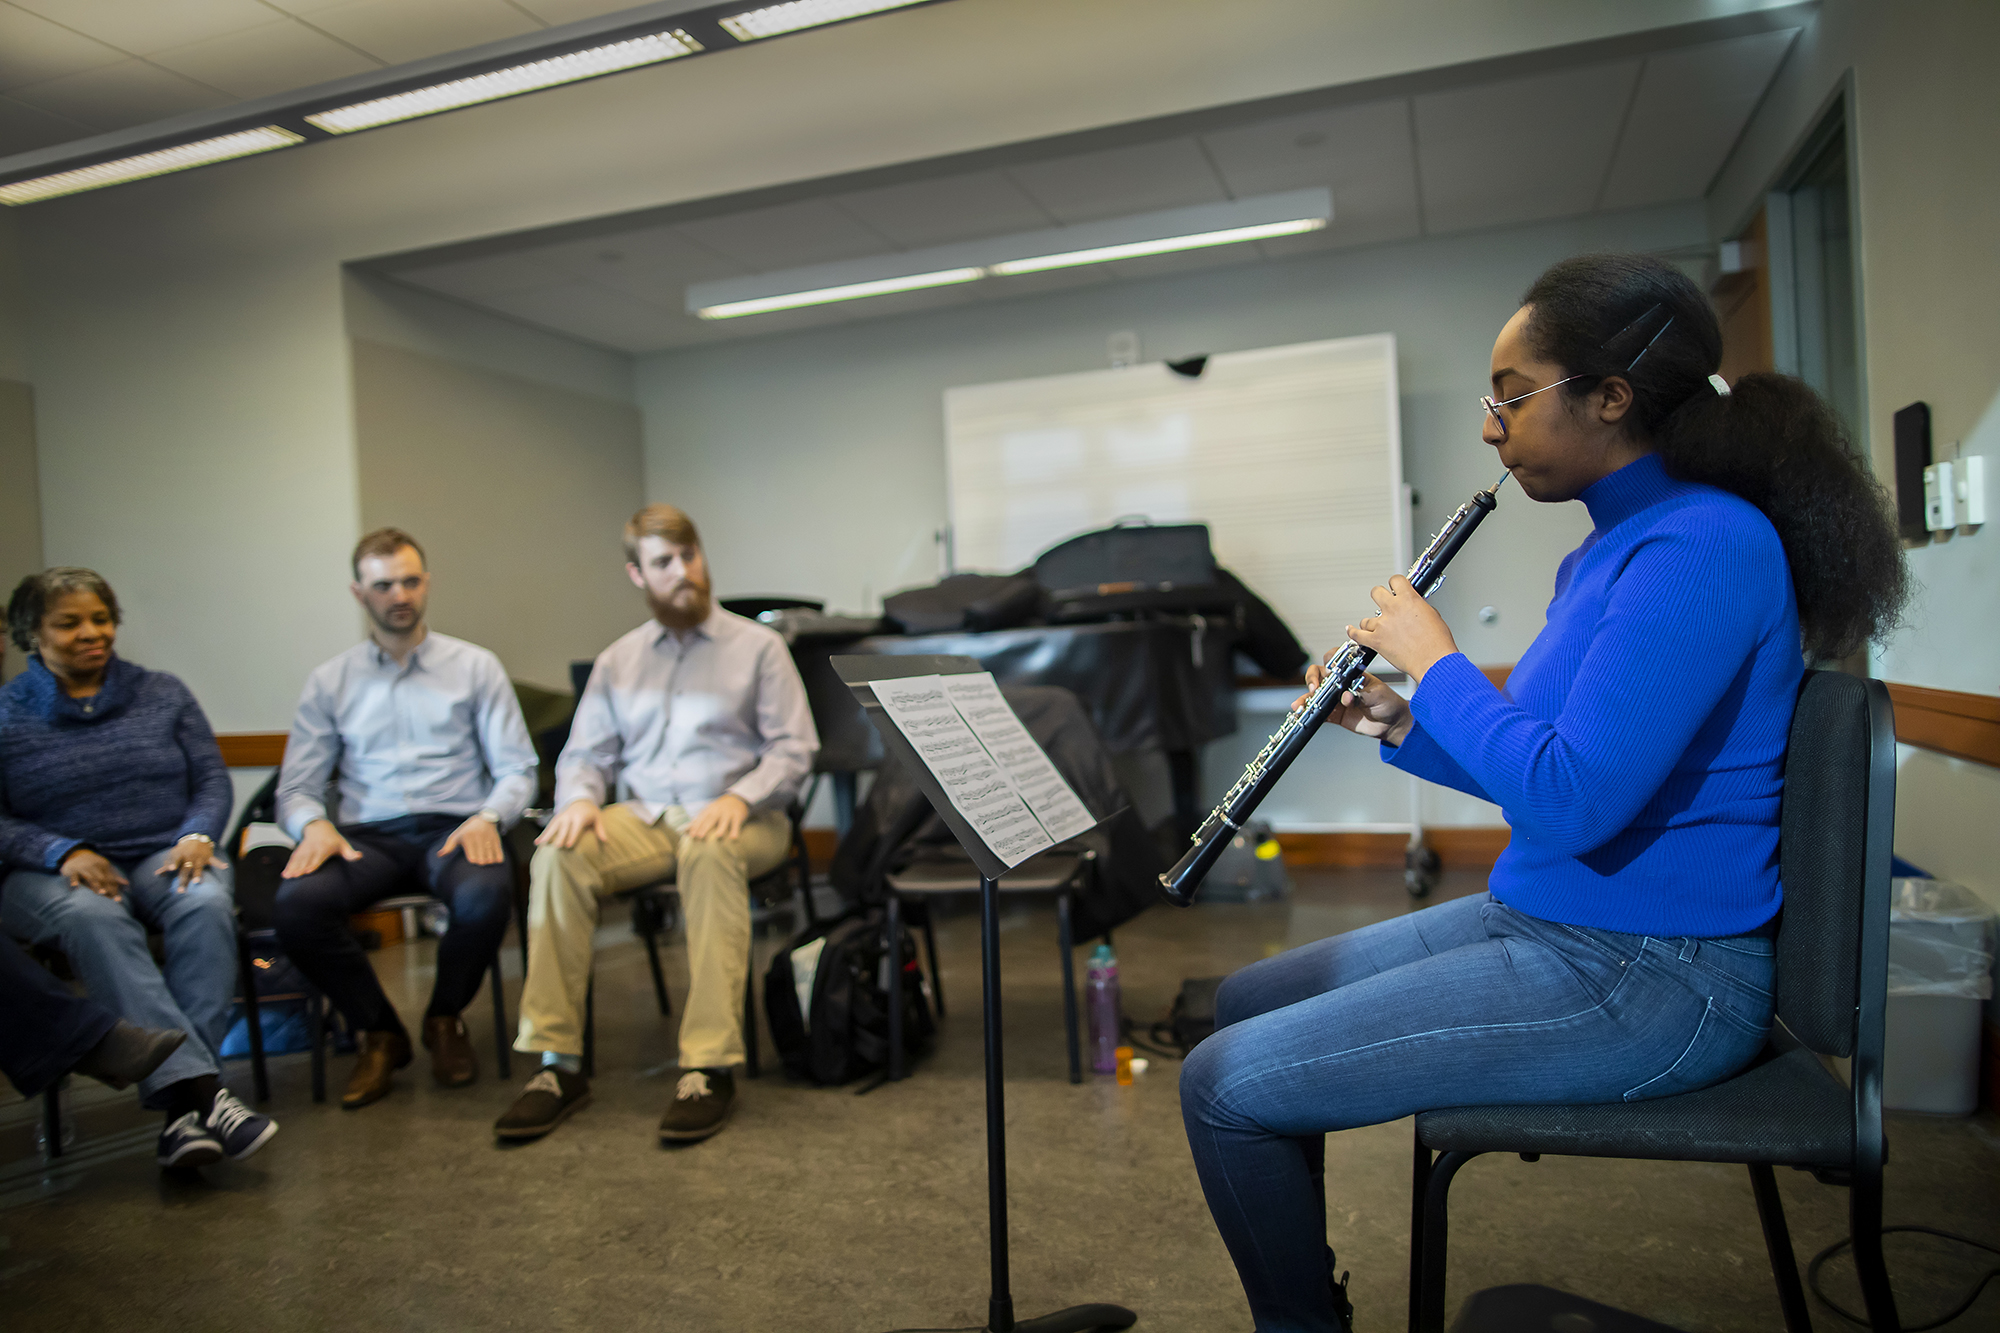 Oboist Sarrah Bushara performs at a Creative Expression Through Music session. Photo by Eric Sucar/Penn University Communications.